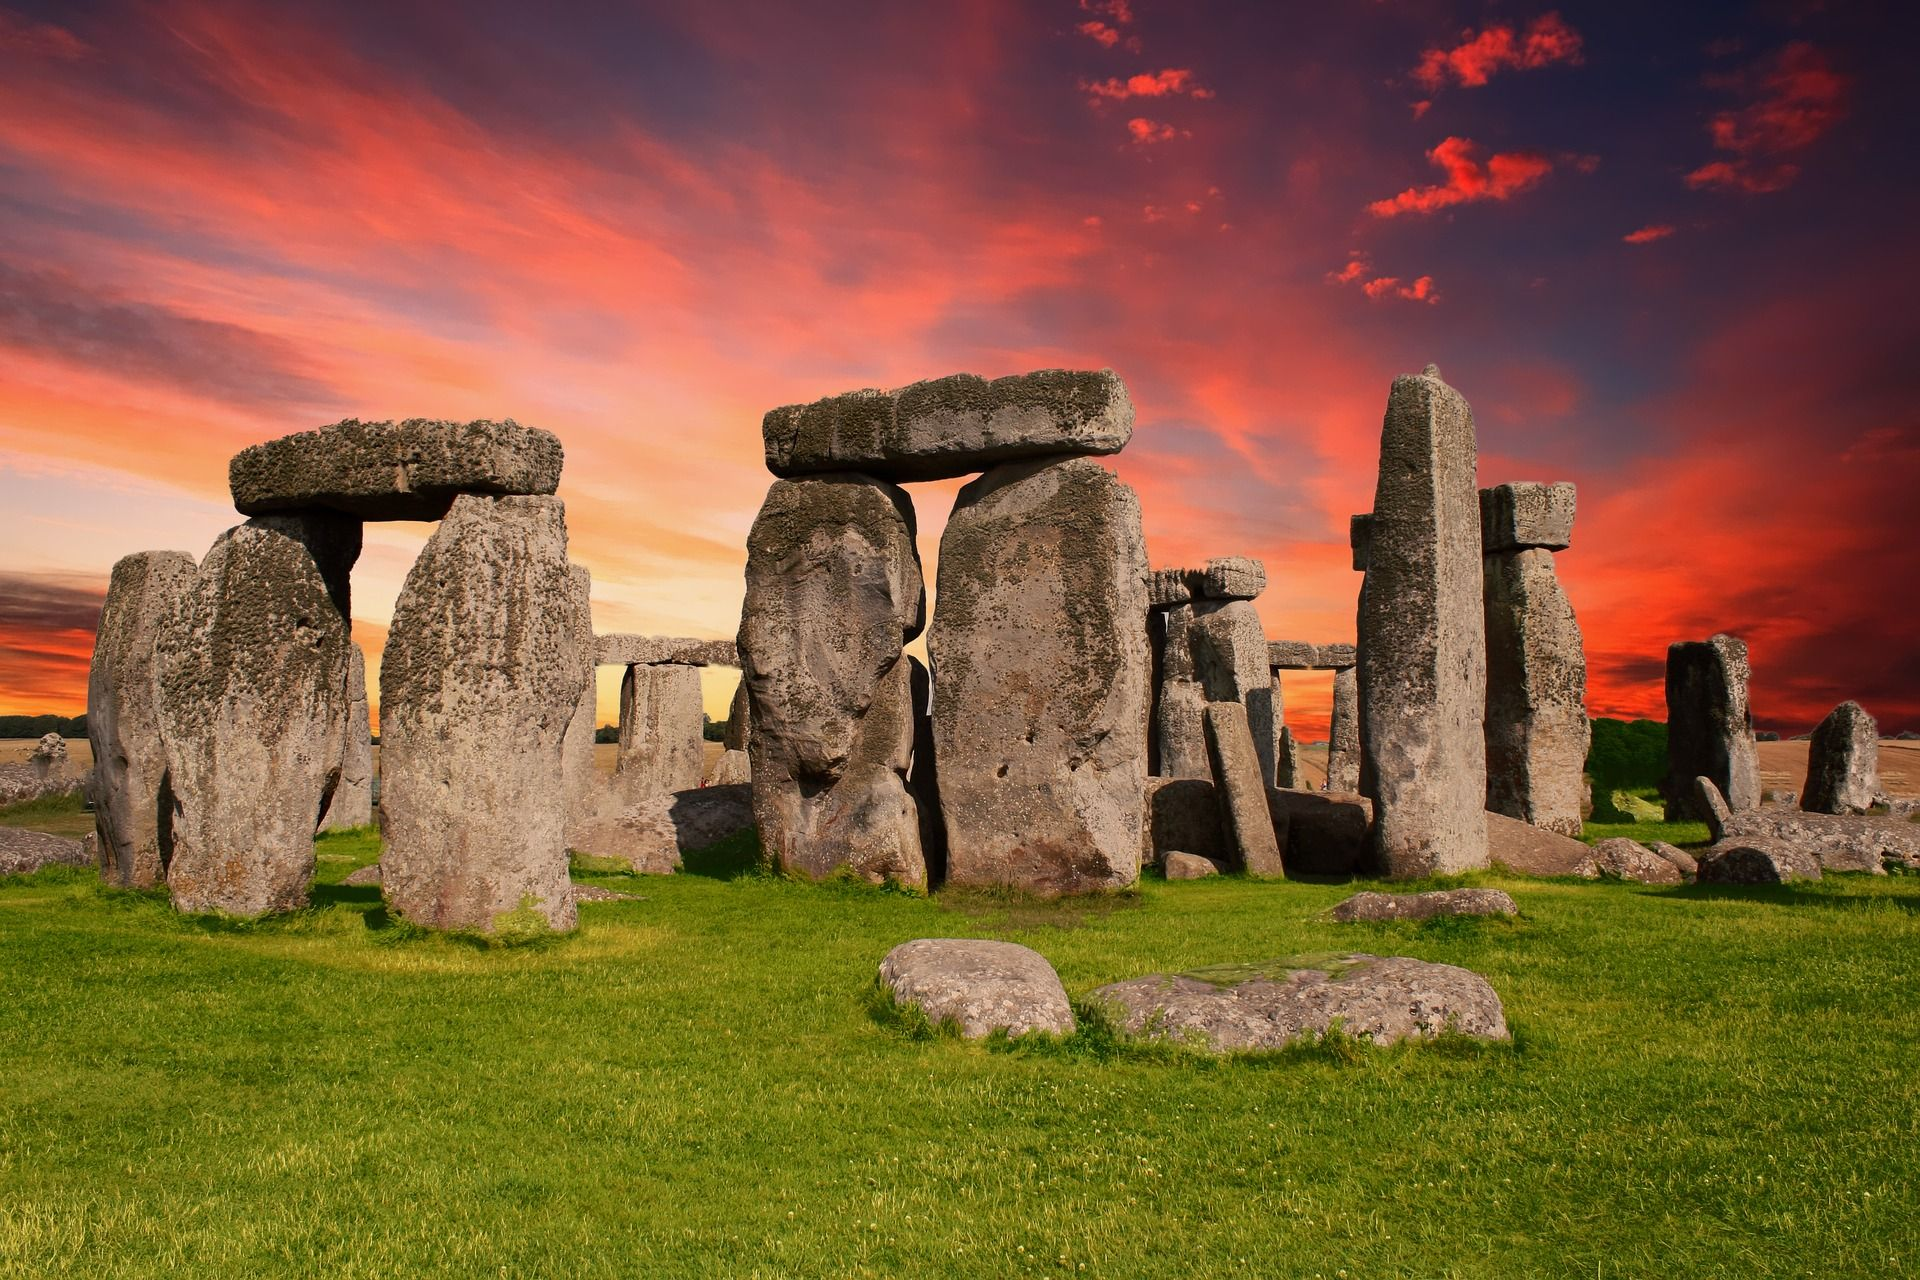 Virtual Visit to Stonehenge - An Immersive 360° Experience